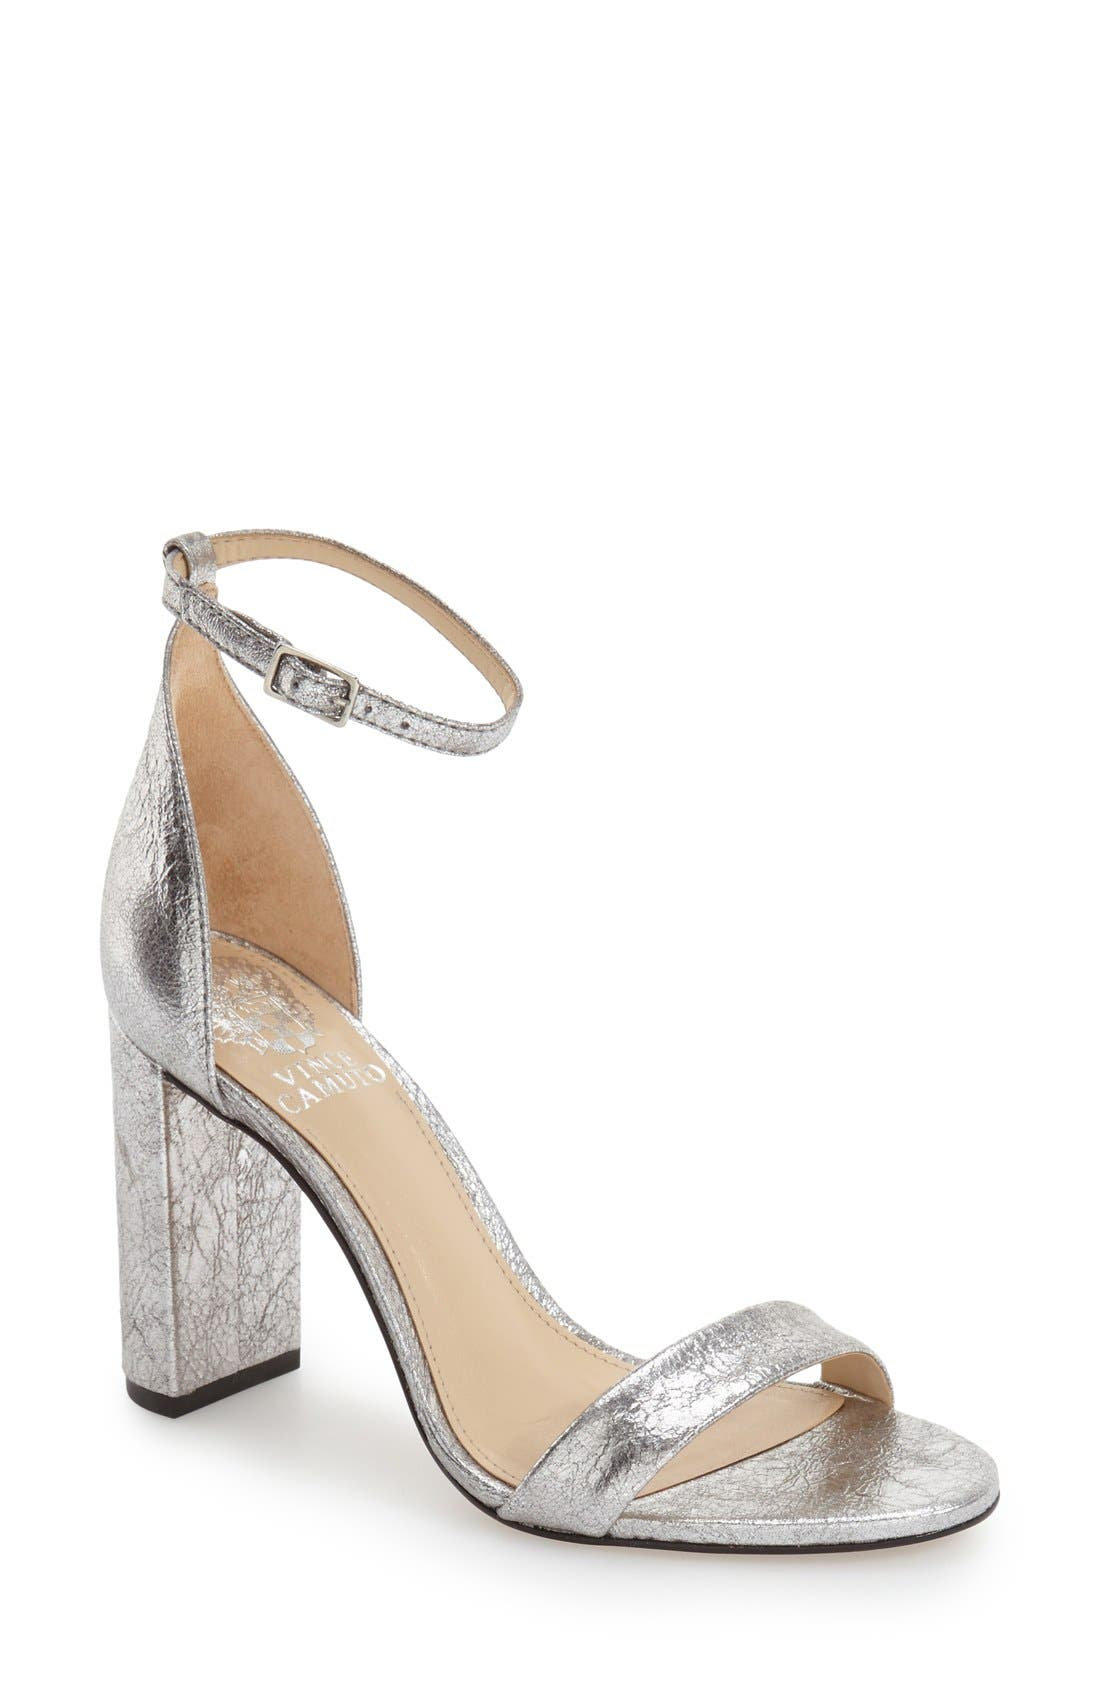 Alternate Image 1 Selected - Vince Camuto 'Mairana' Ankle Strap Sandal (Women)